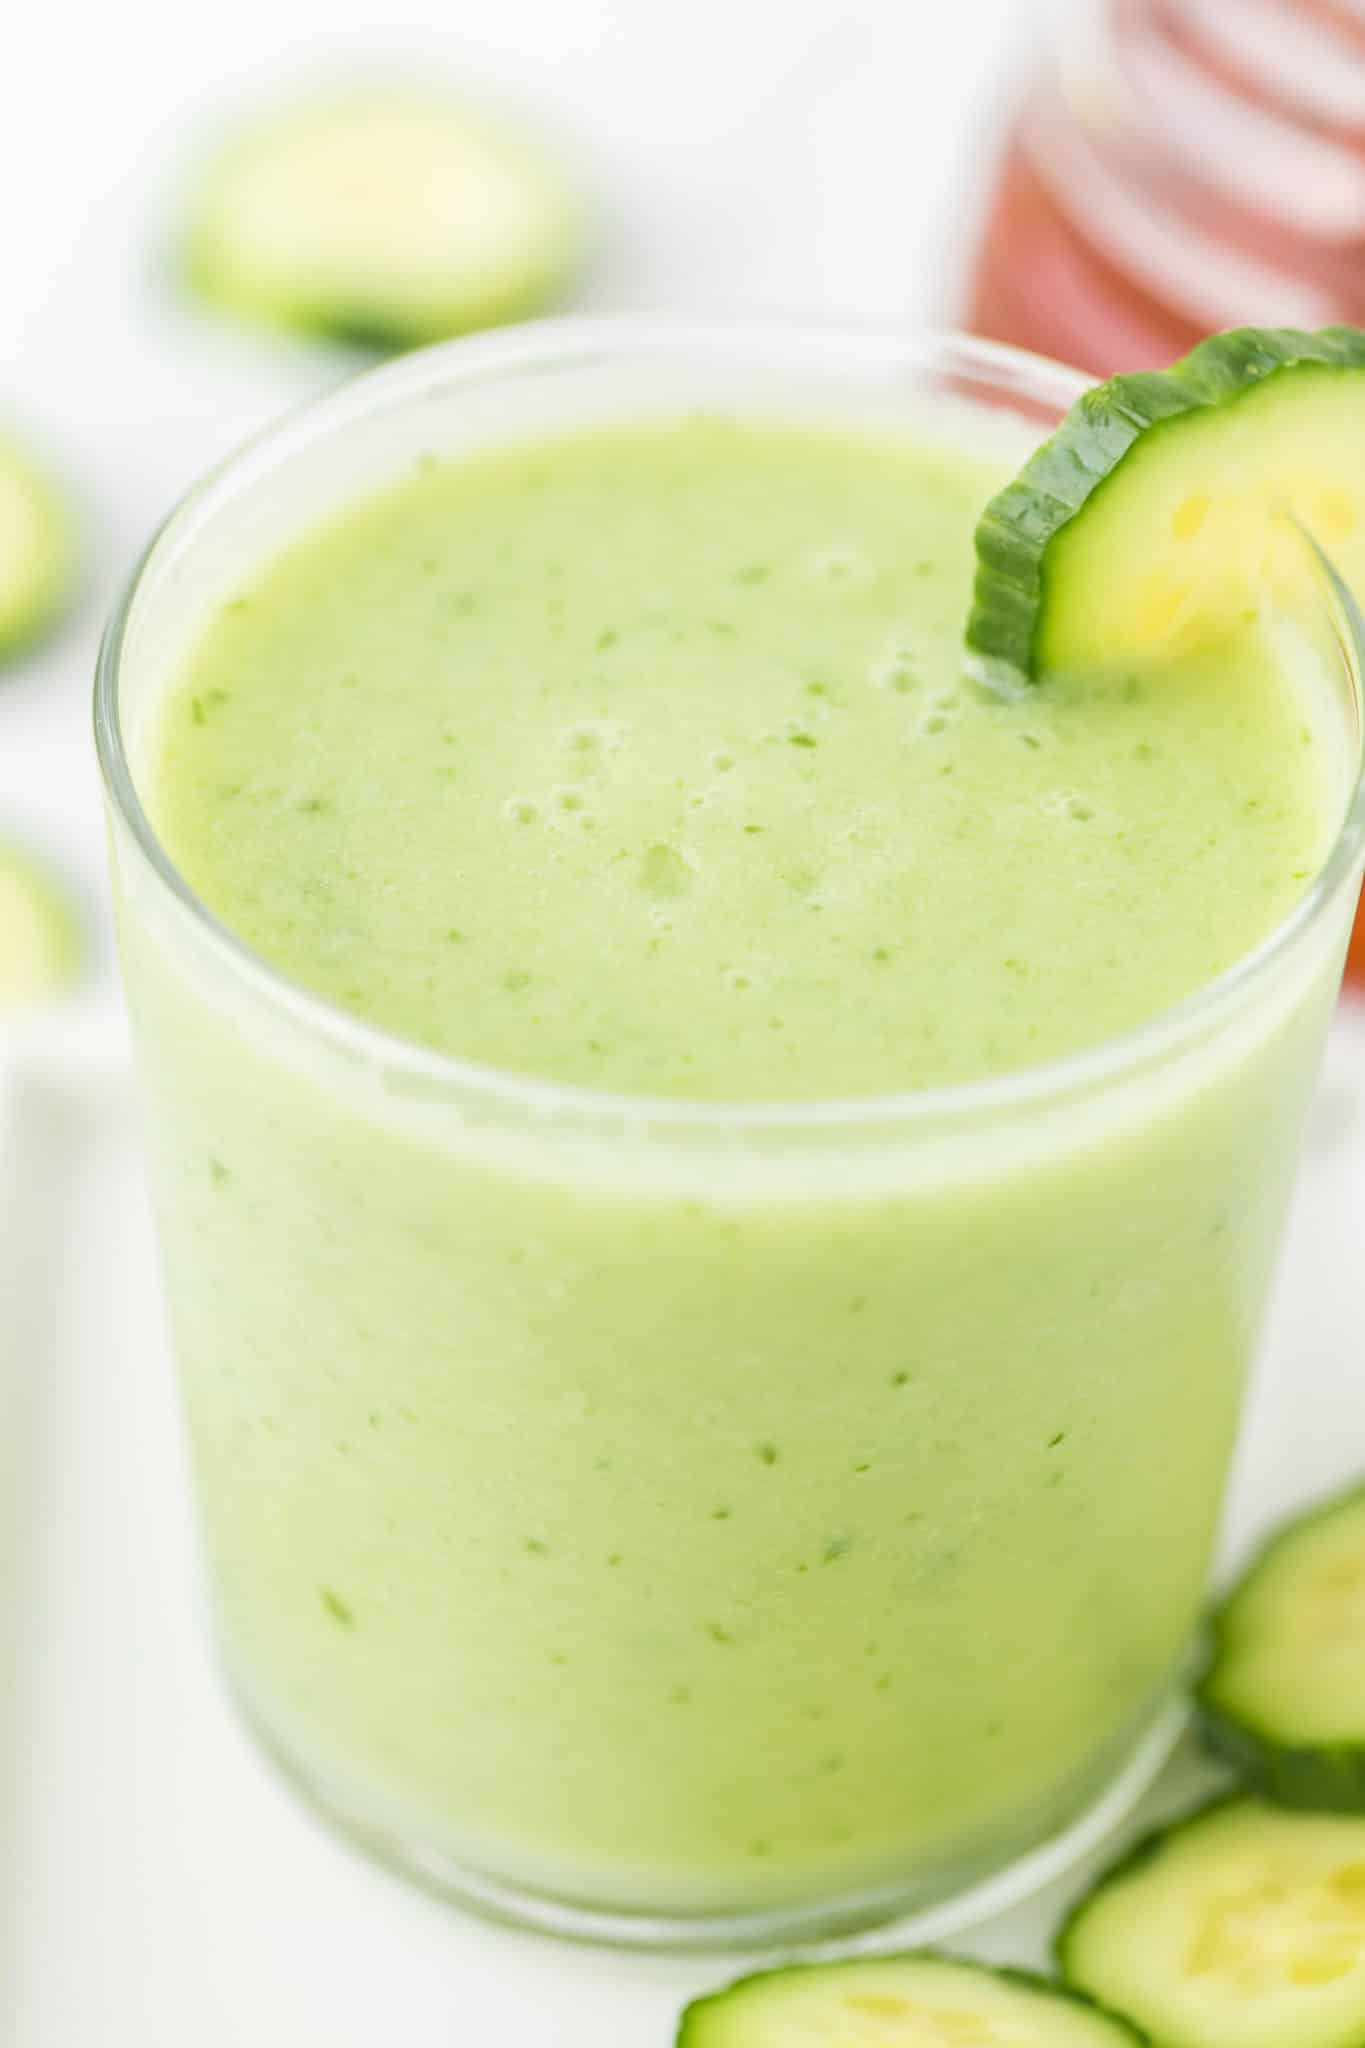 glass filled with light green cucumber smoothie with a slice of fresh cucumber on the edge